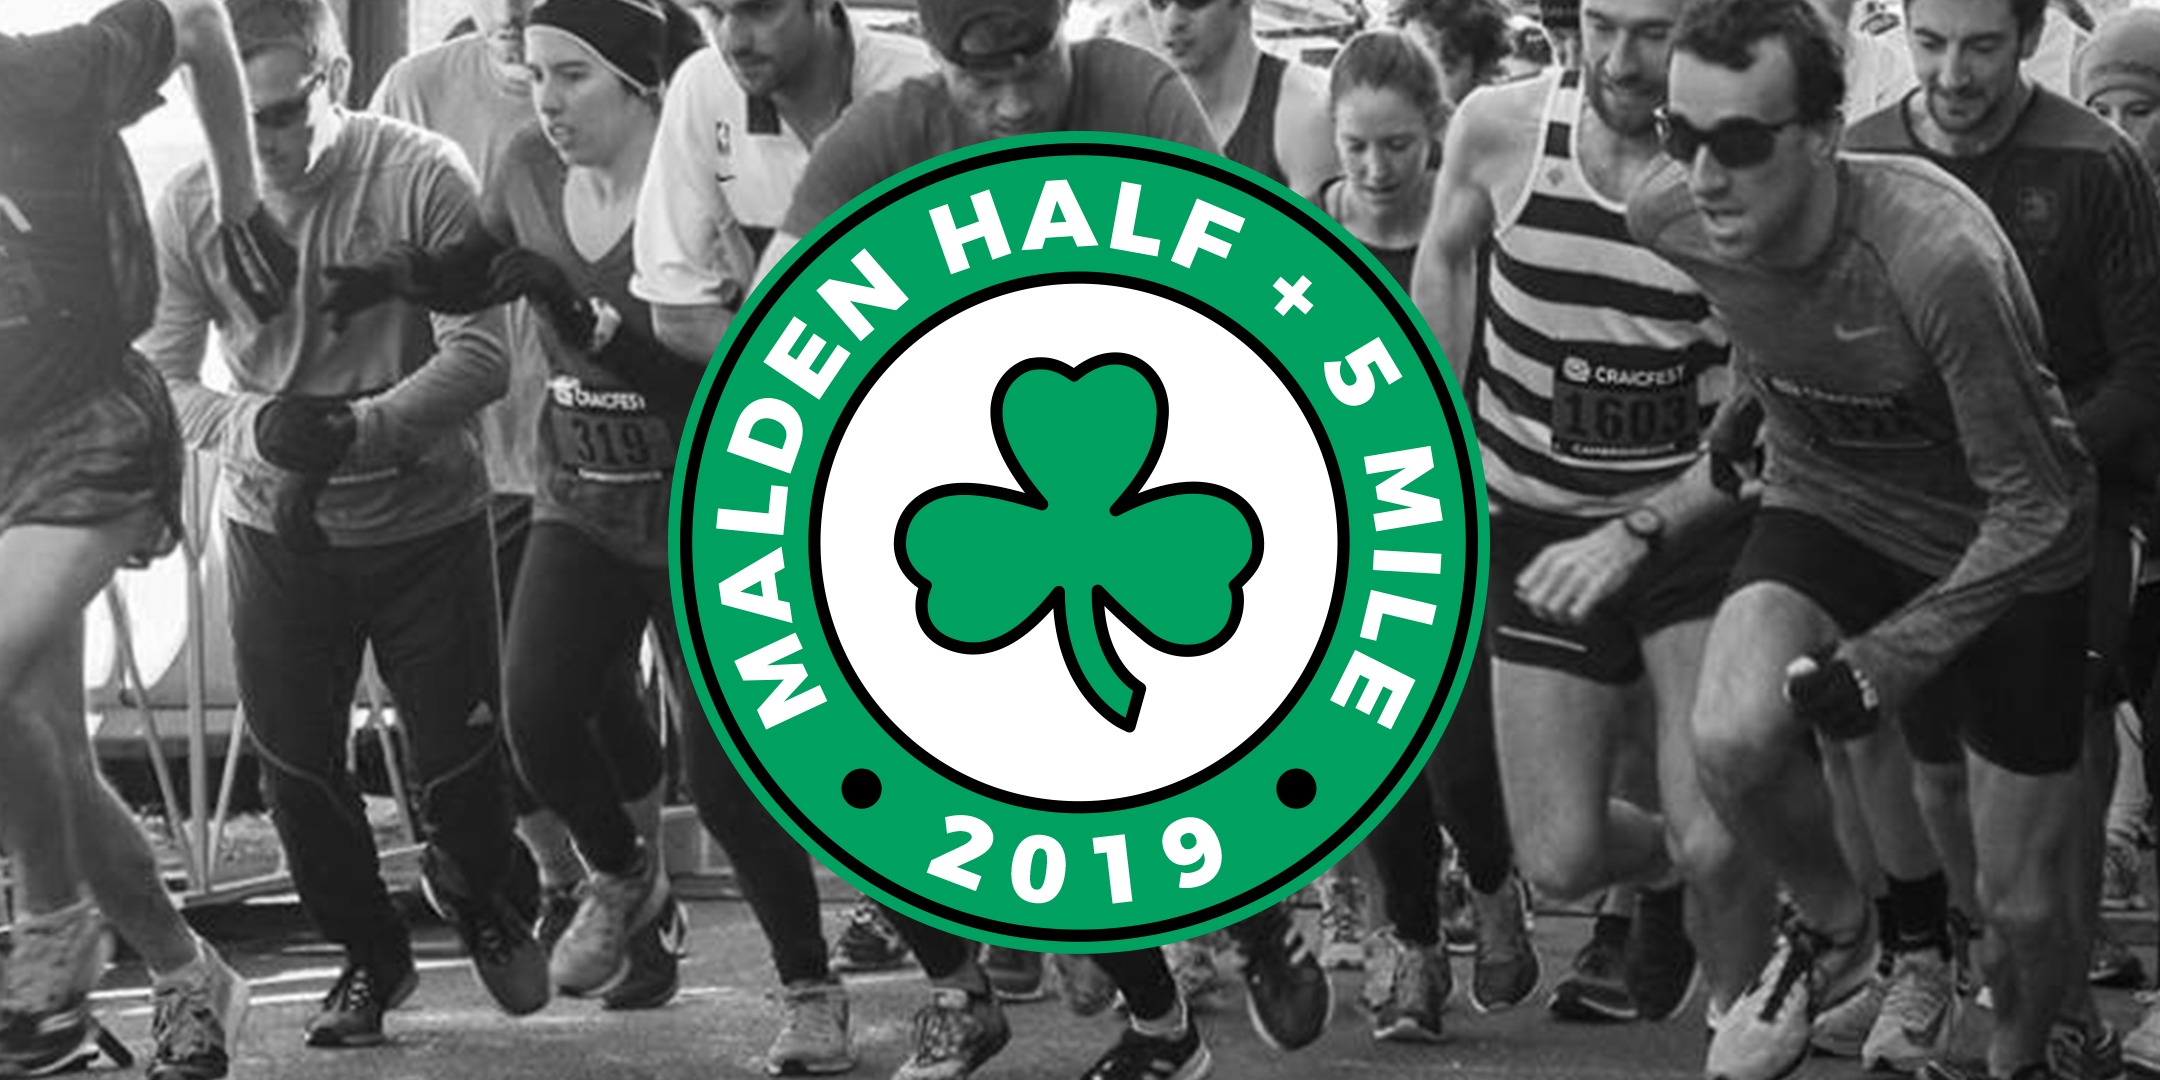 malden half and 5 mile logo